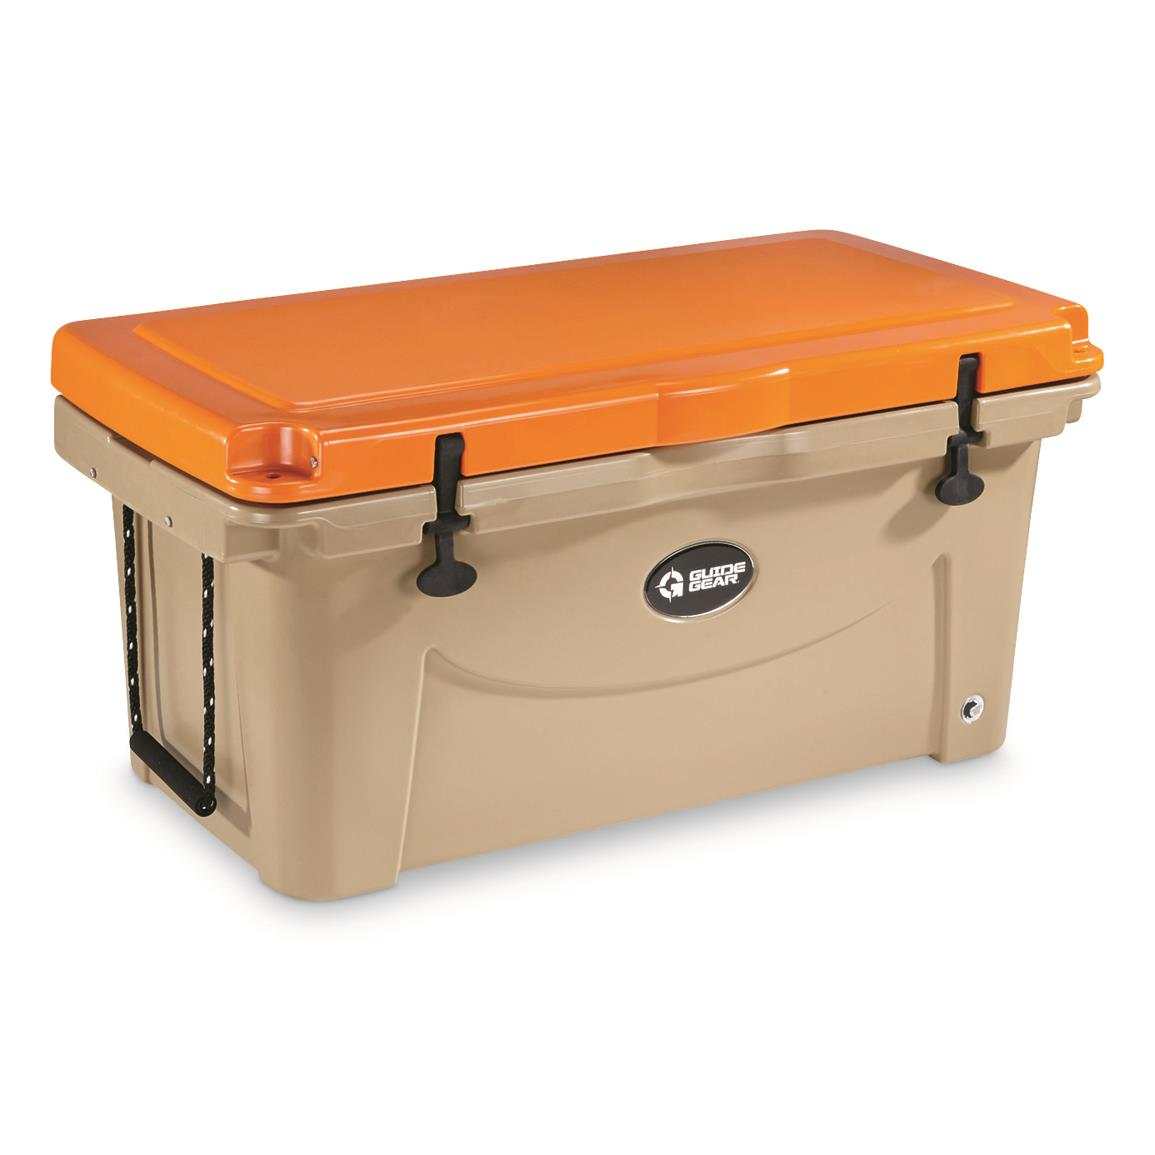 Guide Gear 90 Quart Cooler, Orange/Tan